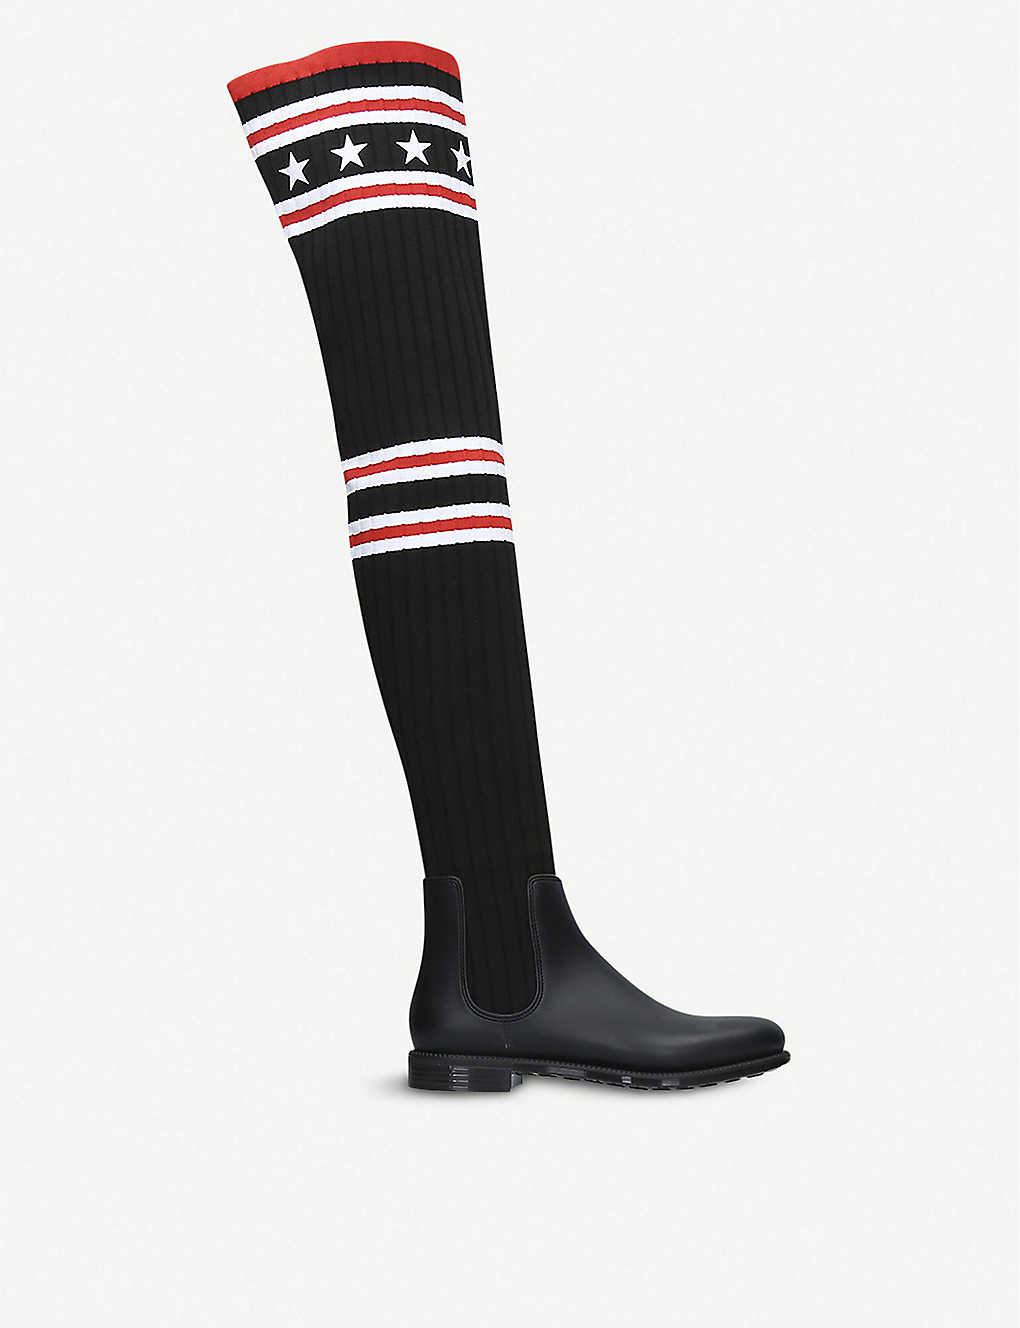 Givenchy Boots Storm rubber and cotton rainboots